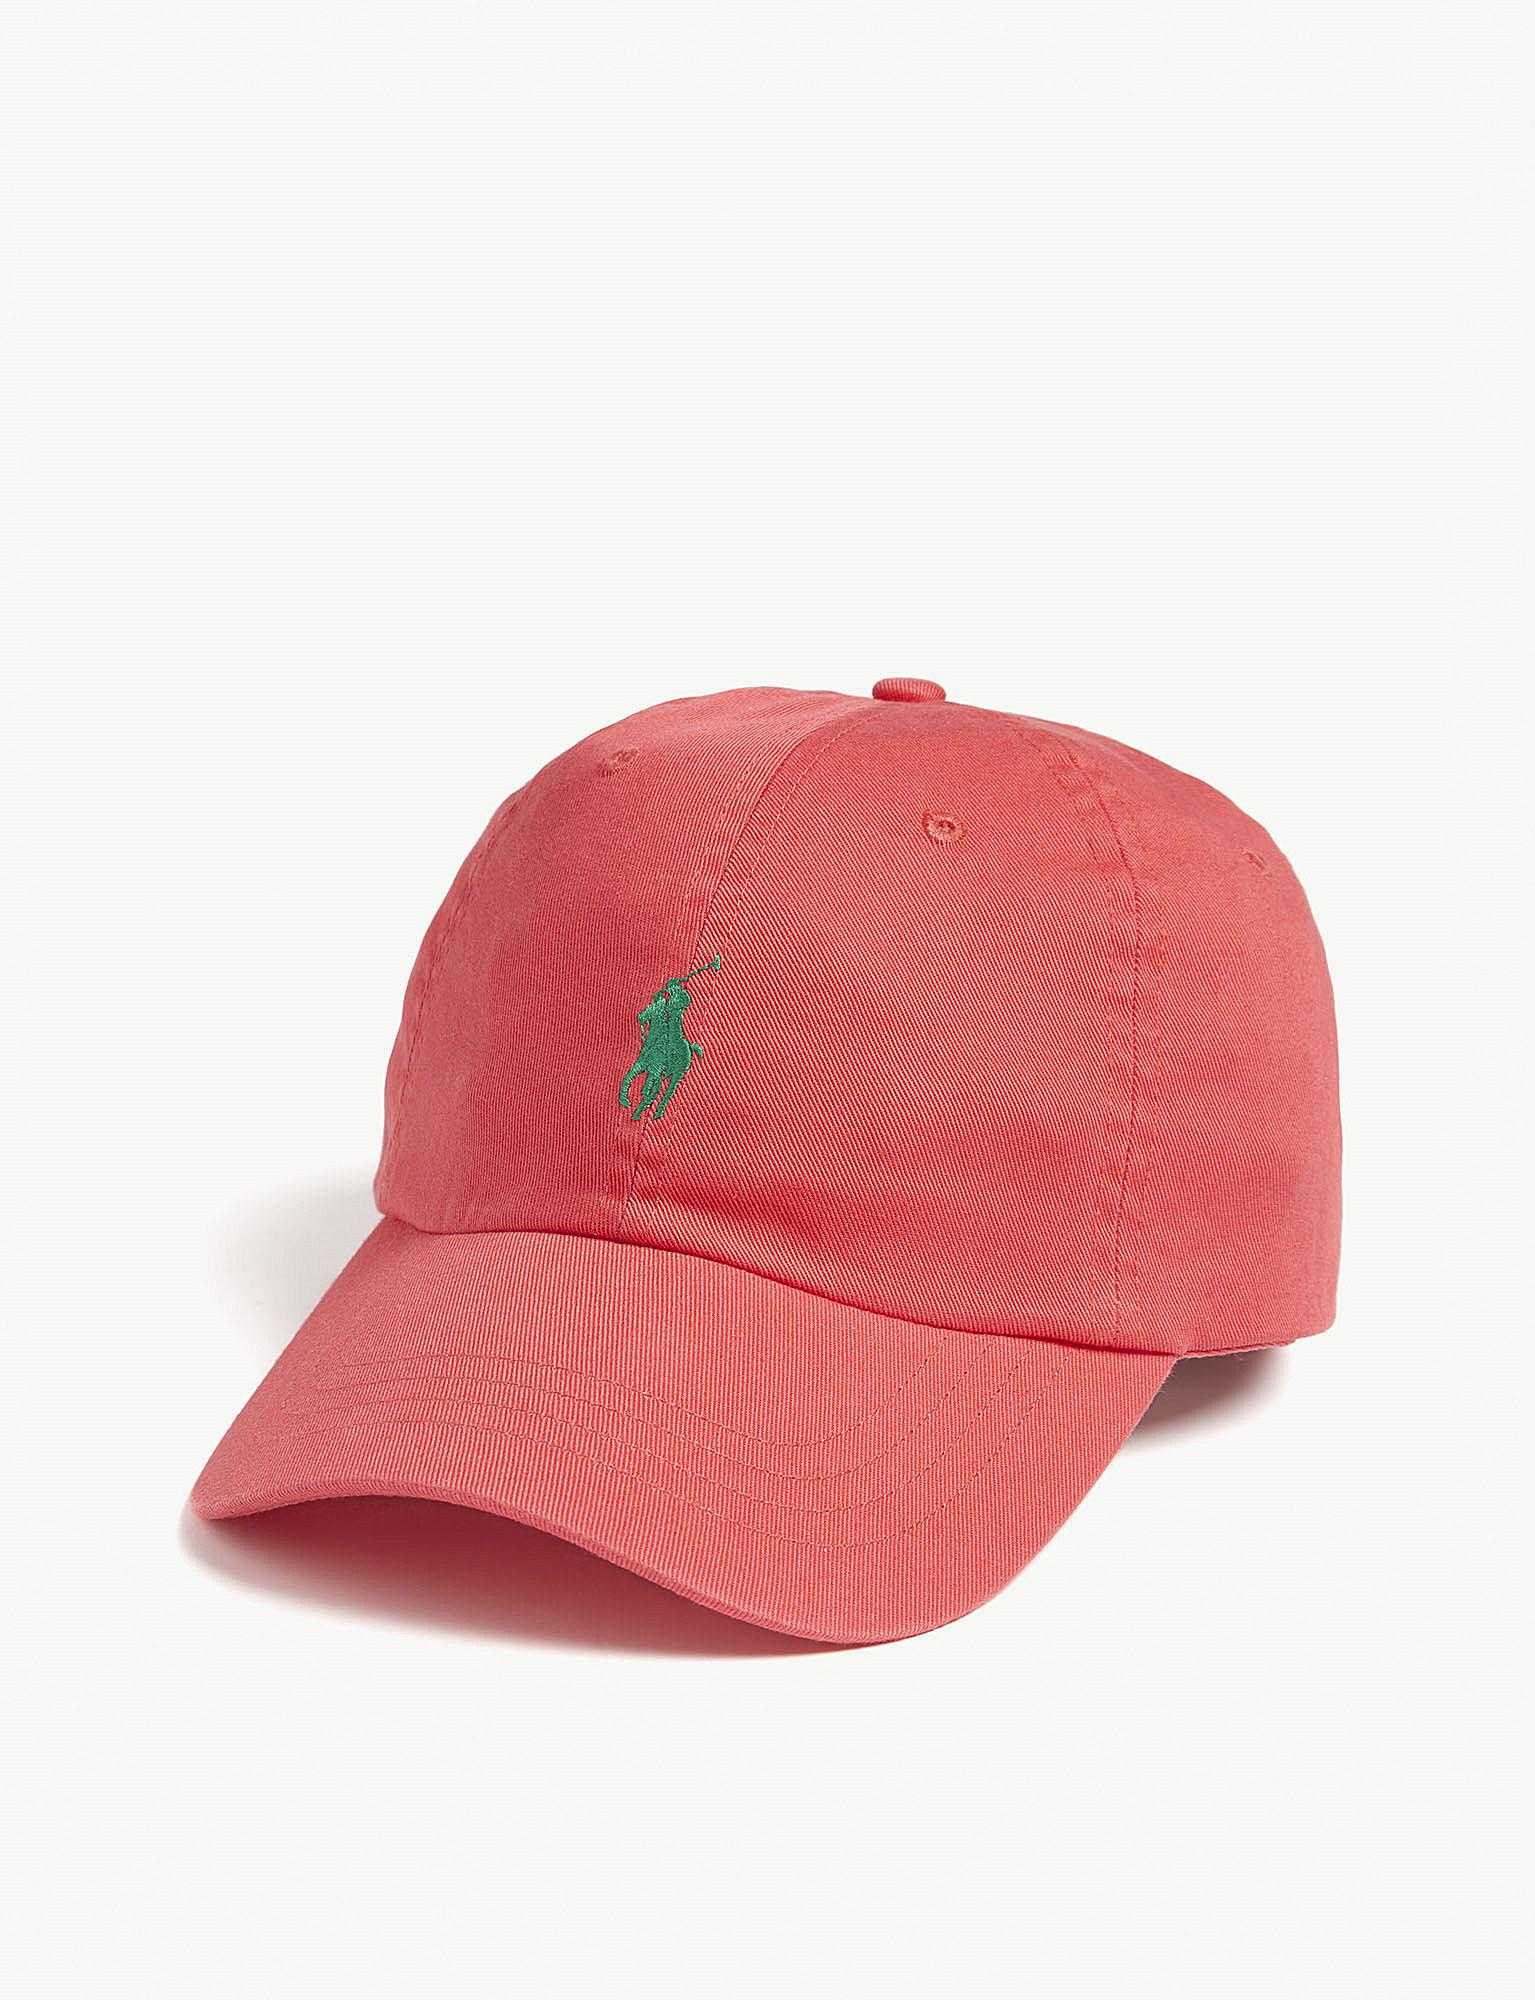 a82a446aa0eef Polo Ralph Lauren Pony Baseball Cap in Red for Men - Lyst